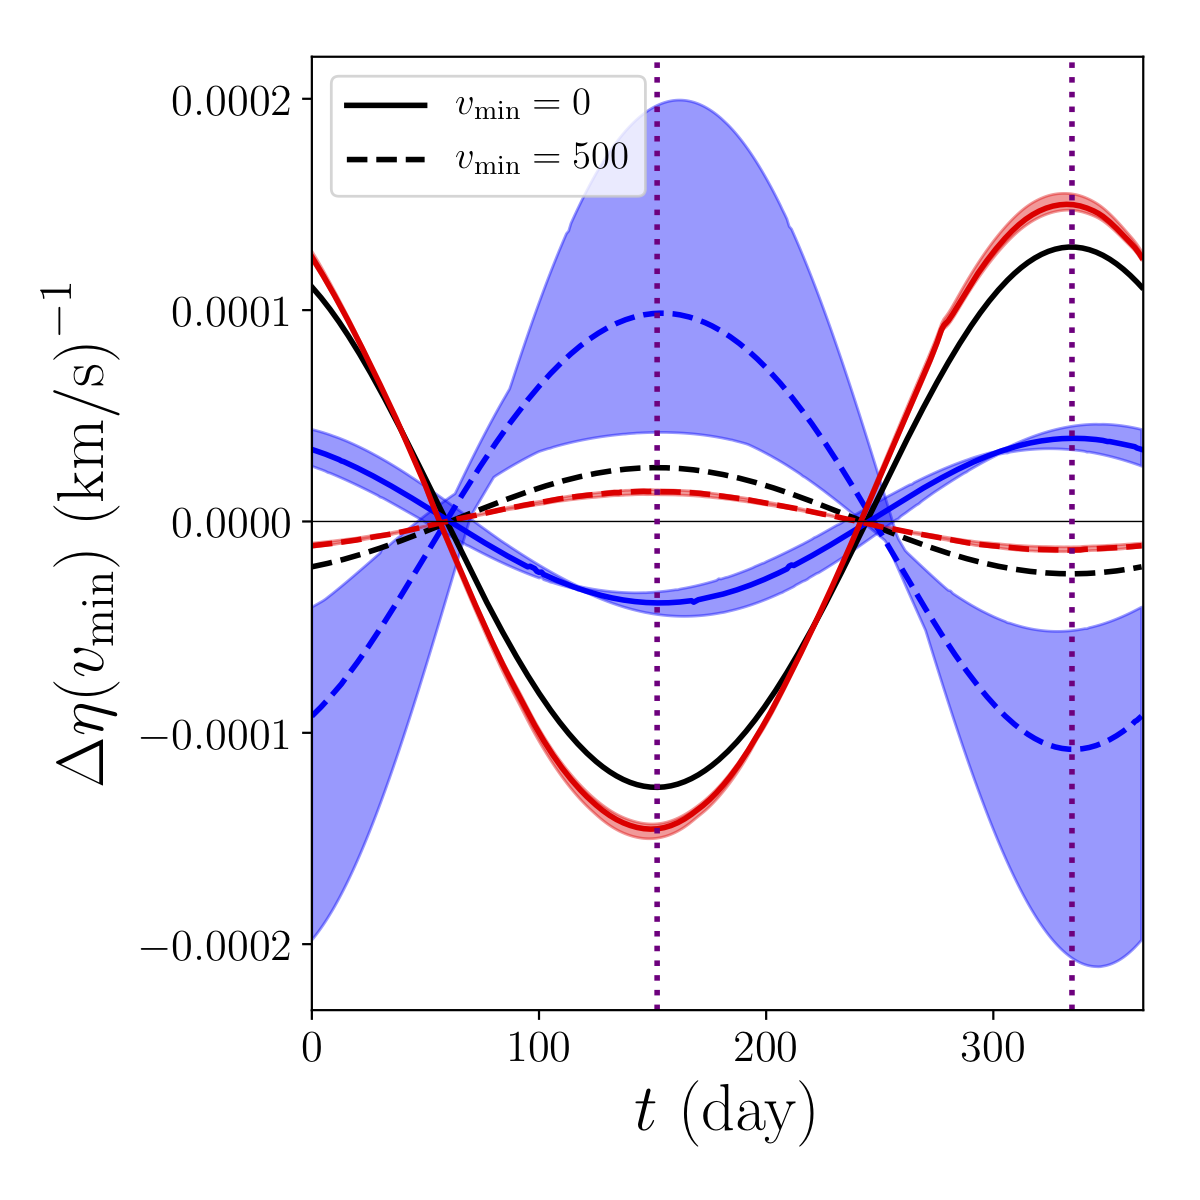 Modulation of amount of dark matter capable of causing a dark matter scattering event for the Standard Halo Model (black), the Gaia model for the halo (red), and the S1 stream (blue).